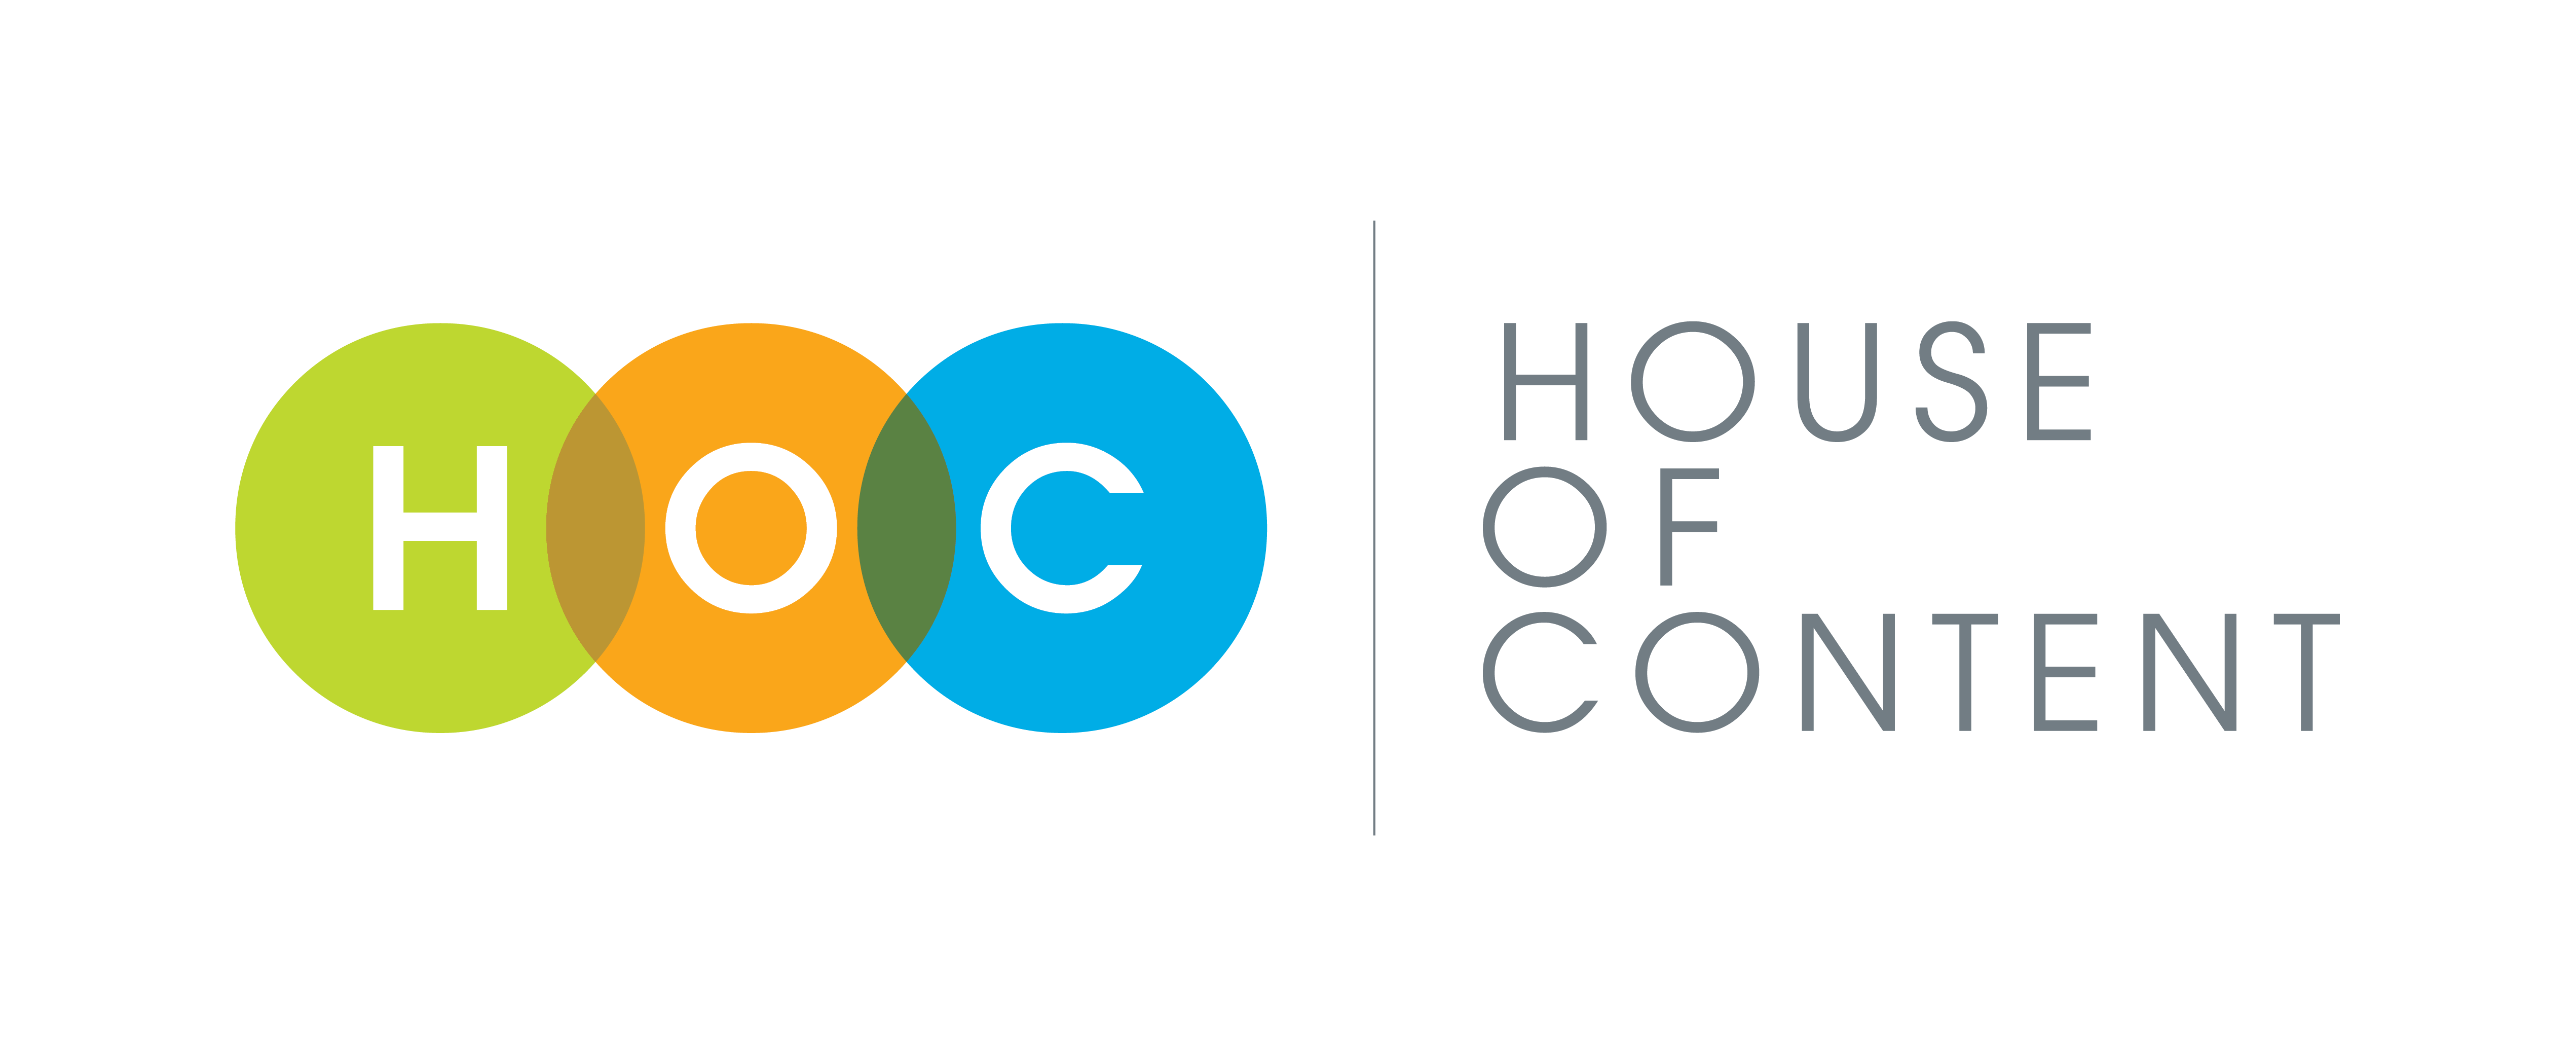 House of Content